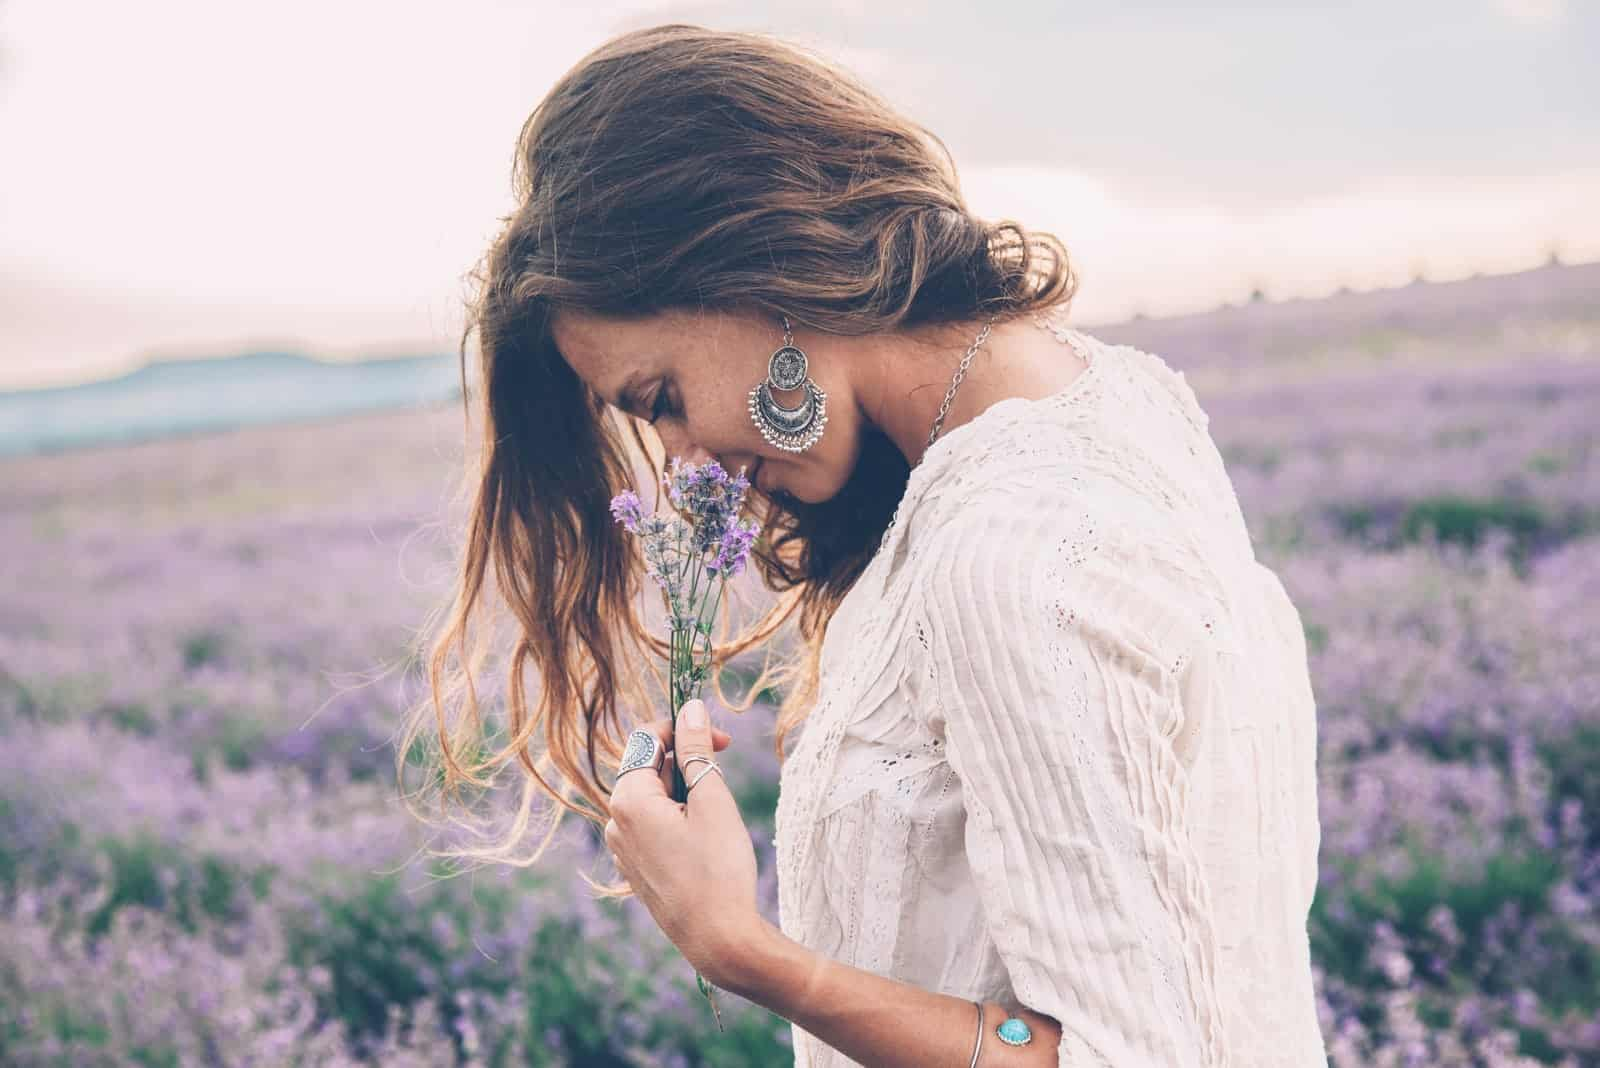 a beautiful woman walks through a lavender field and smells a lavender flower